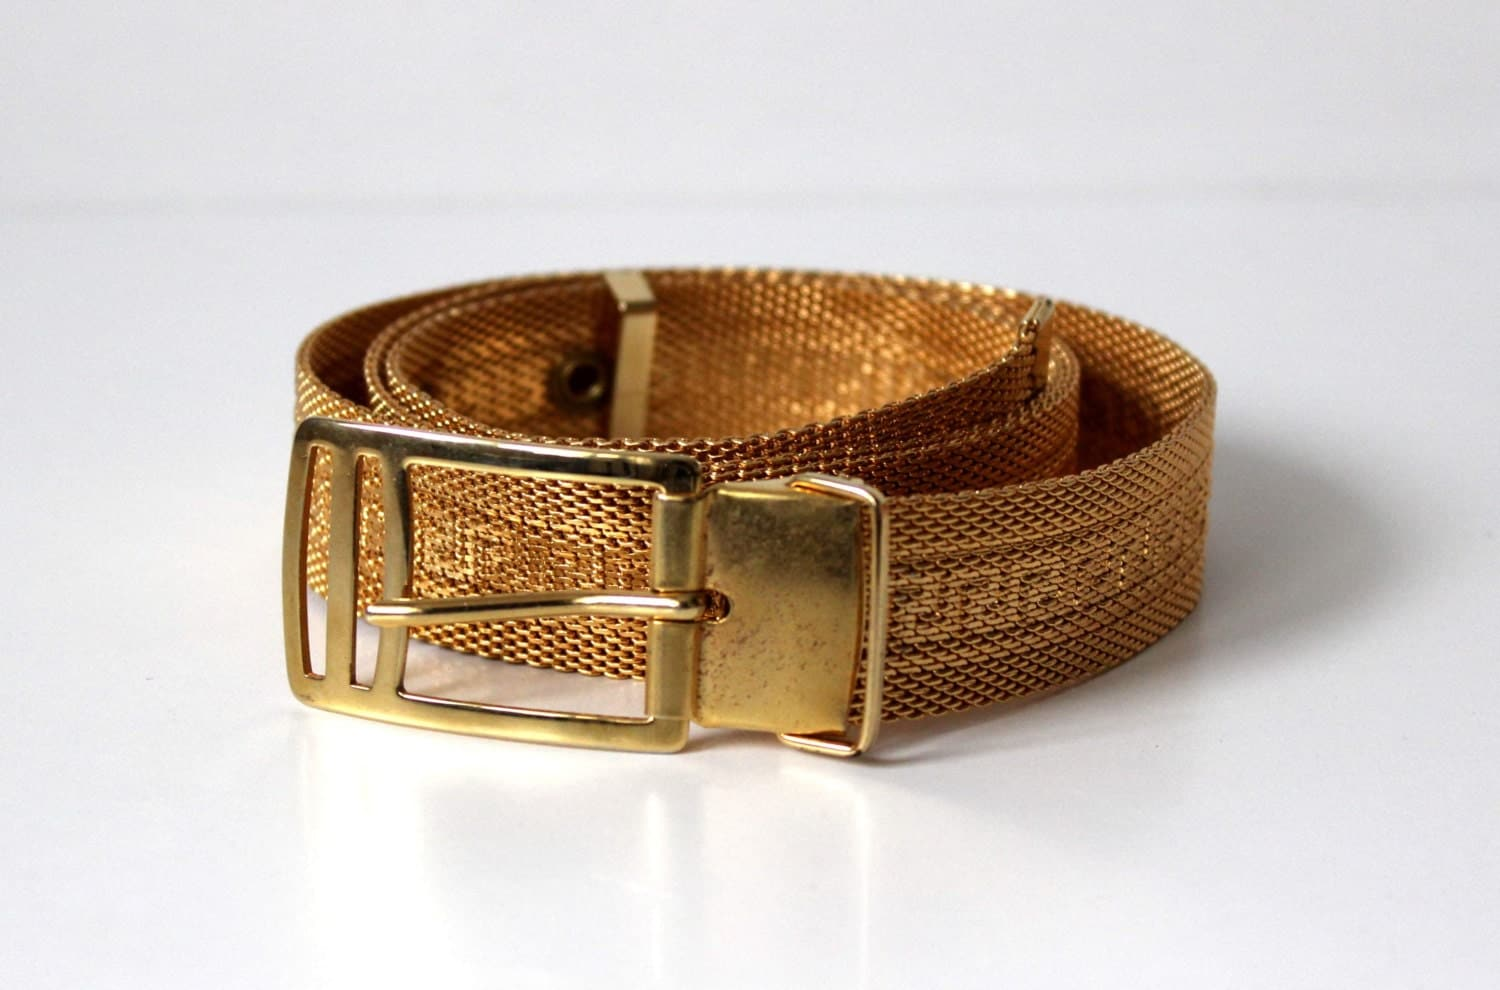 You searched for: gold belt! Etsy is the home to thousands of handmade, vintage, and one-of-a-kind products and gifts related to your search. No matter what you're looking for or where you are in the world, our global marketplace of sellers can help you find unique and affordable options. Let's get started!